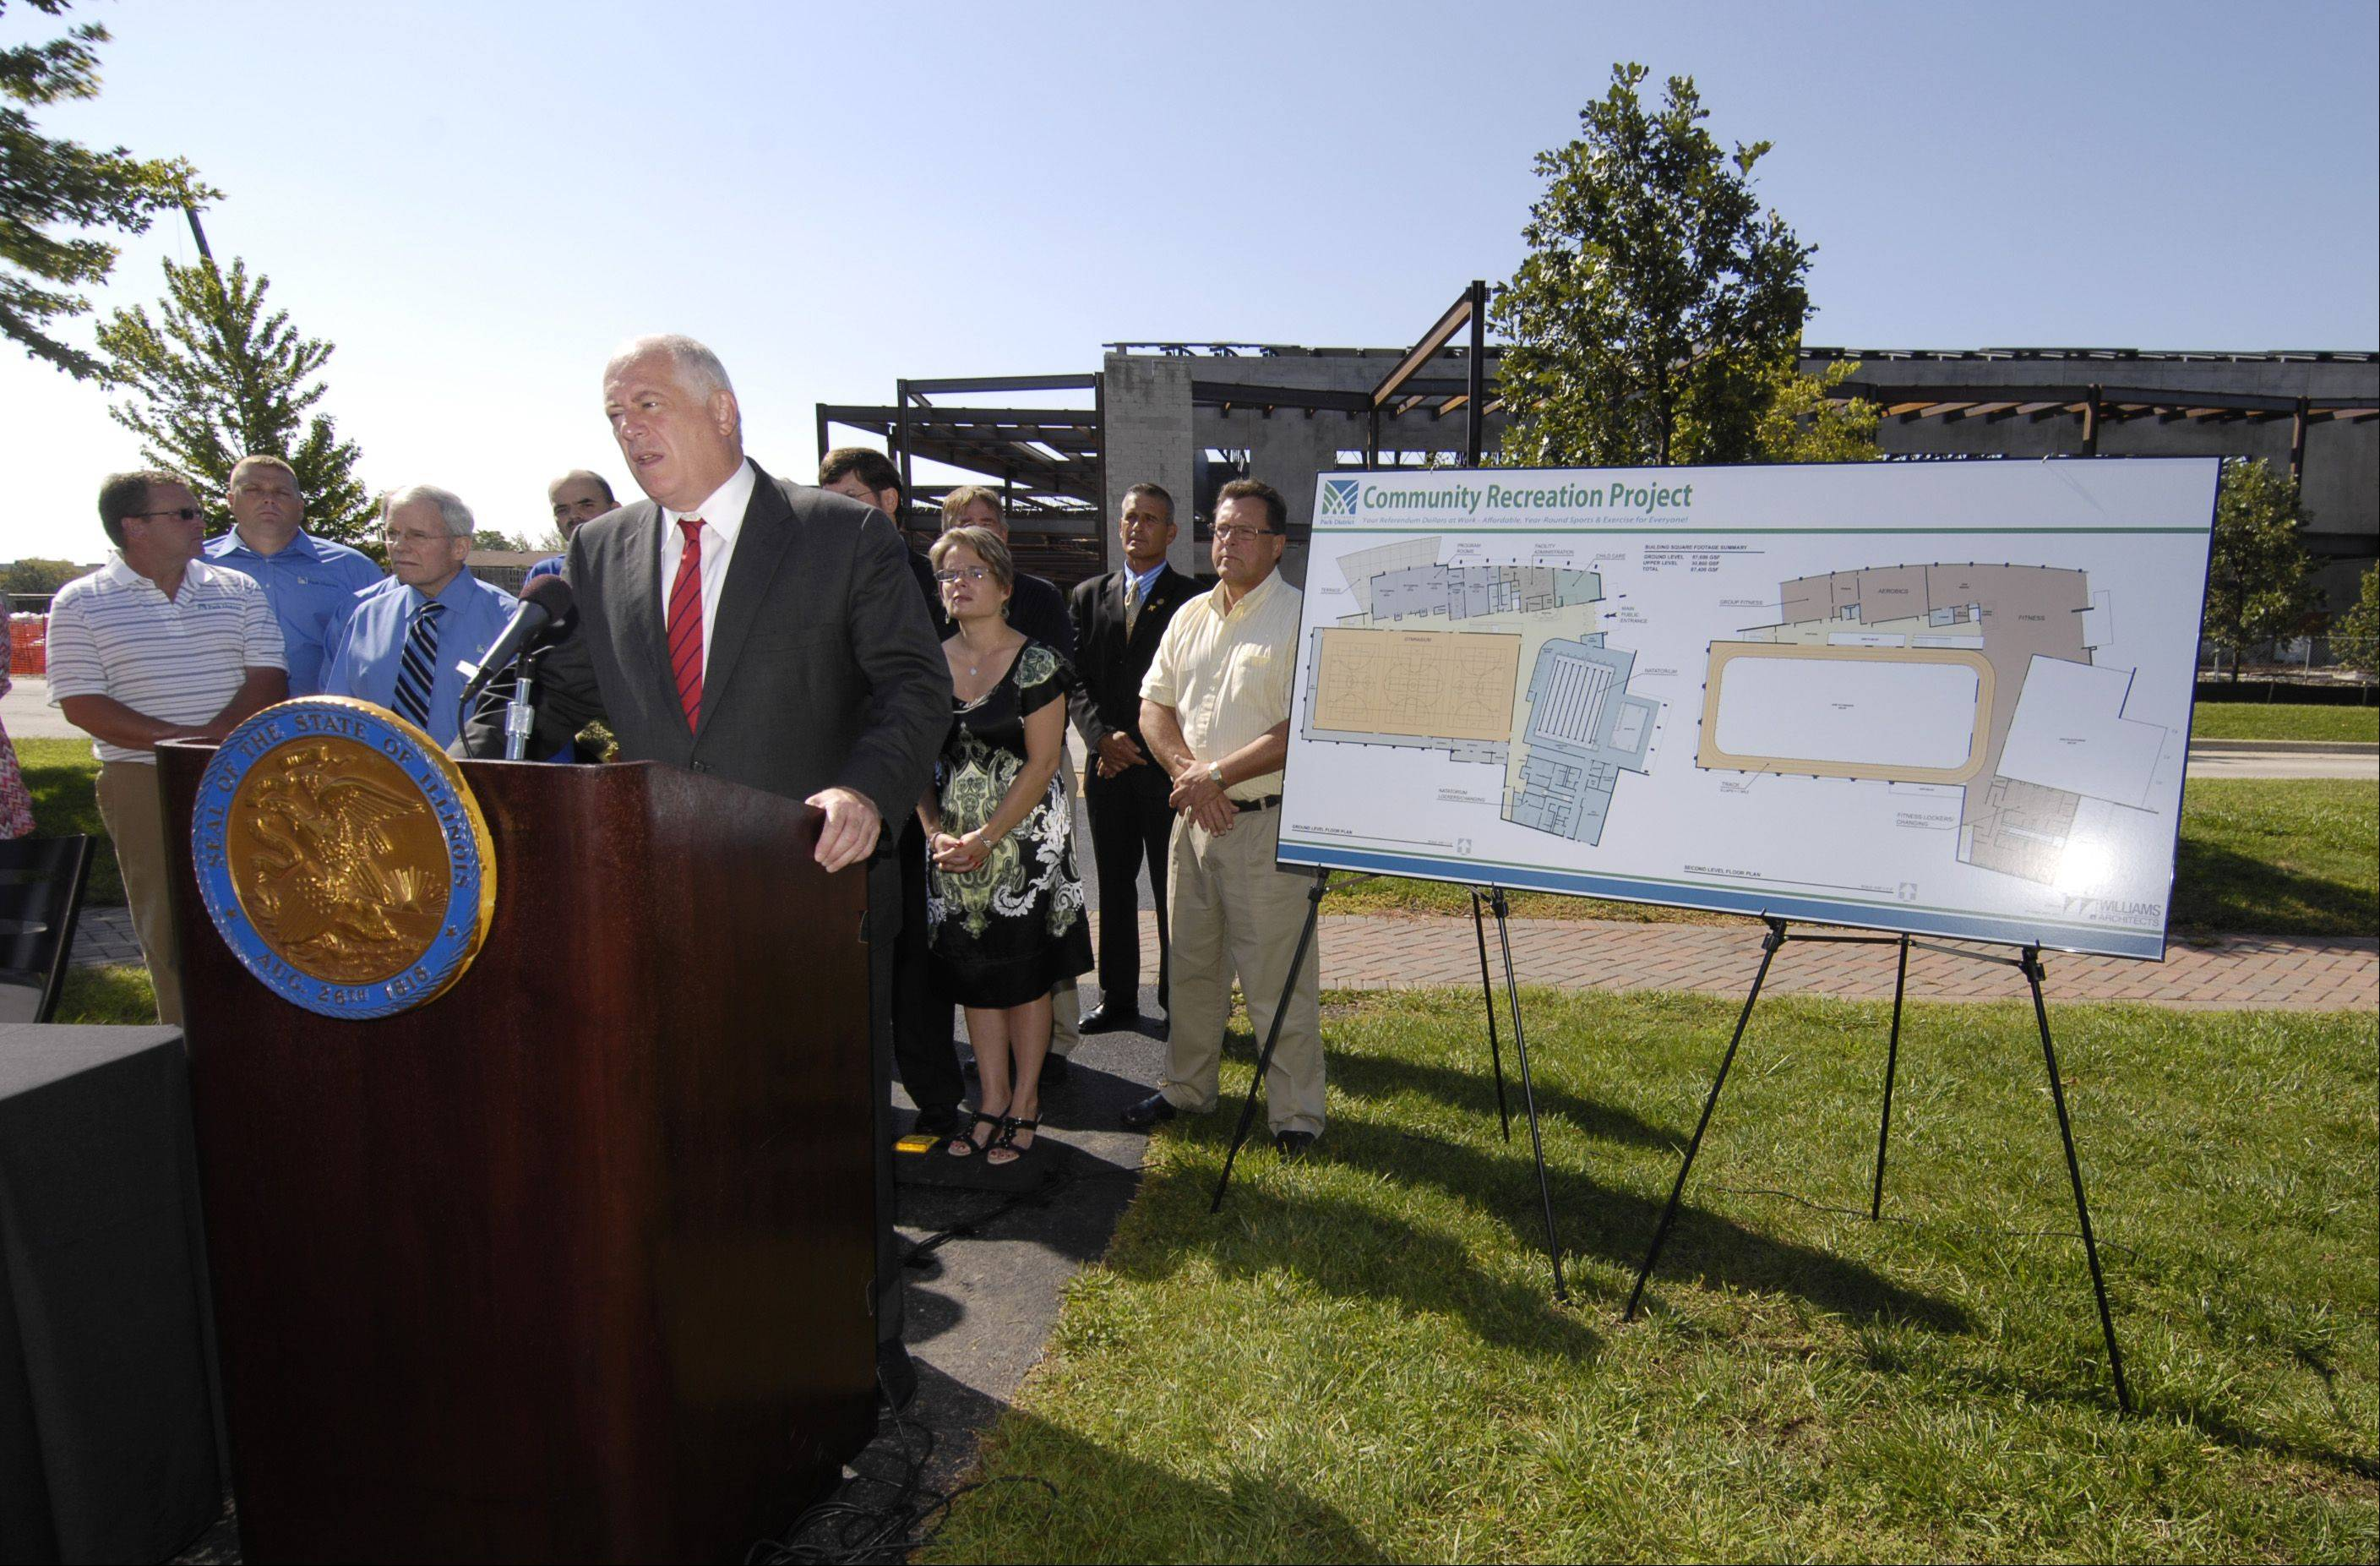 With the construction site of the new Carol Stream recreation center as a backdrop, Gov. Pat Quinn signs a bill Monday allowing the Carol Stream Park District to fully realize all $37 million in referendum dollars approved by voters in 2010.